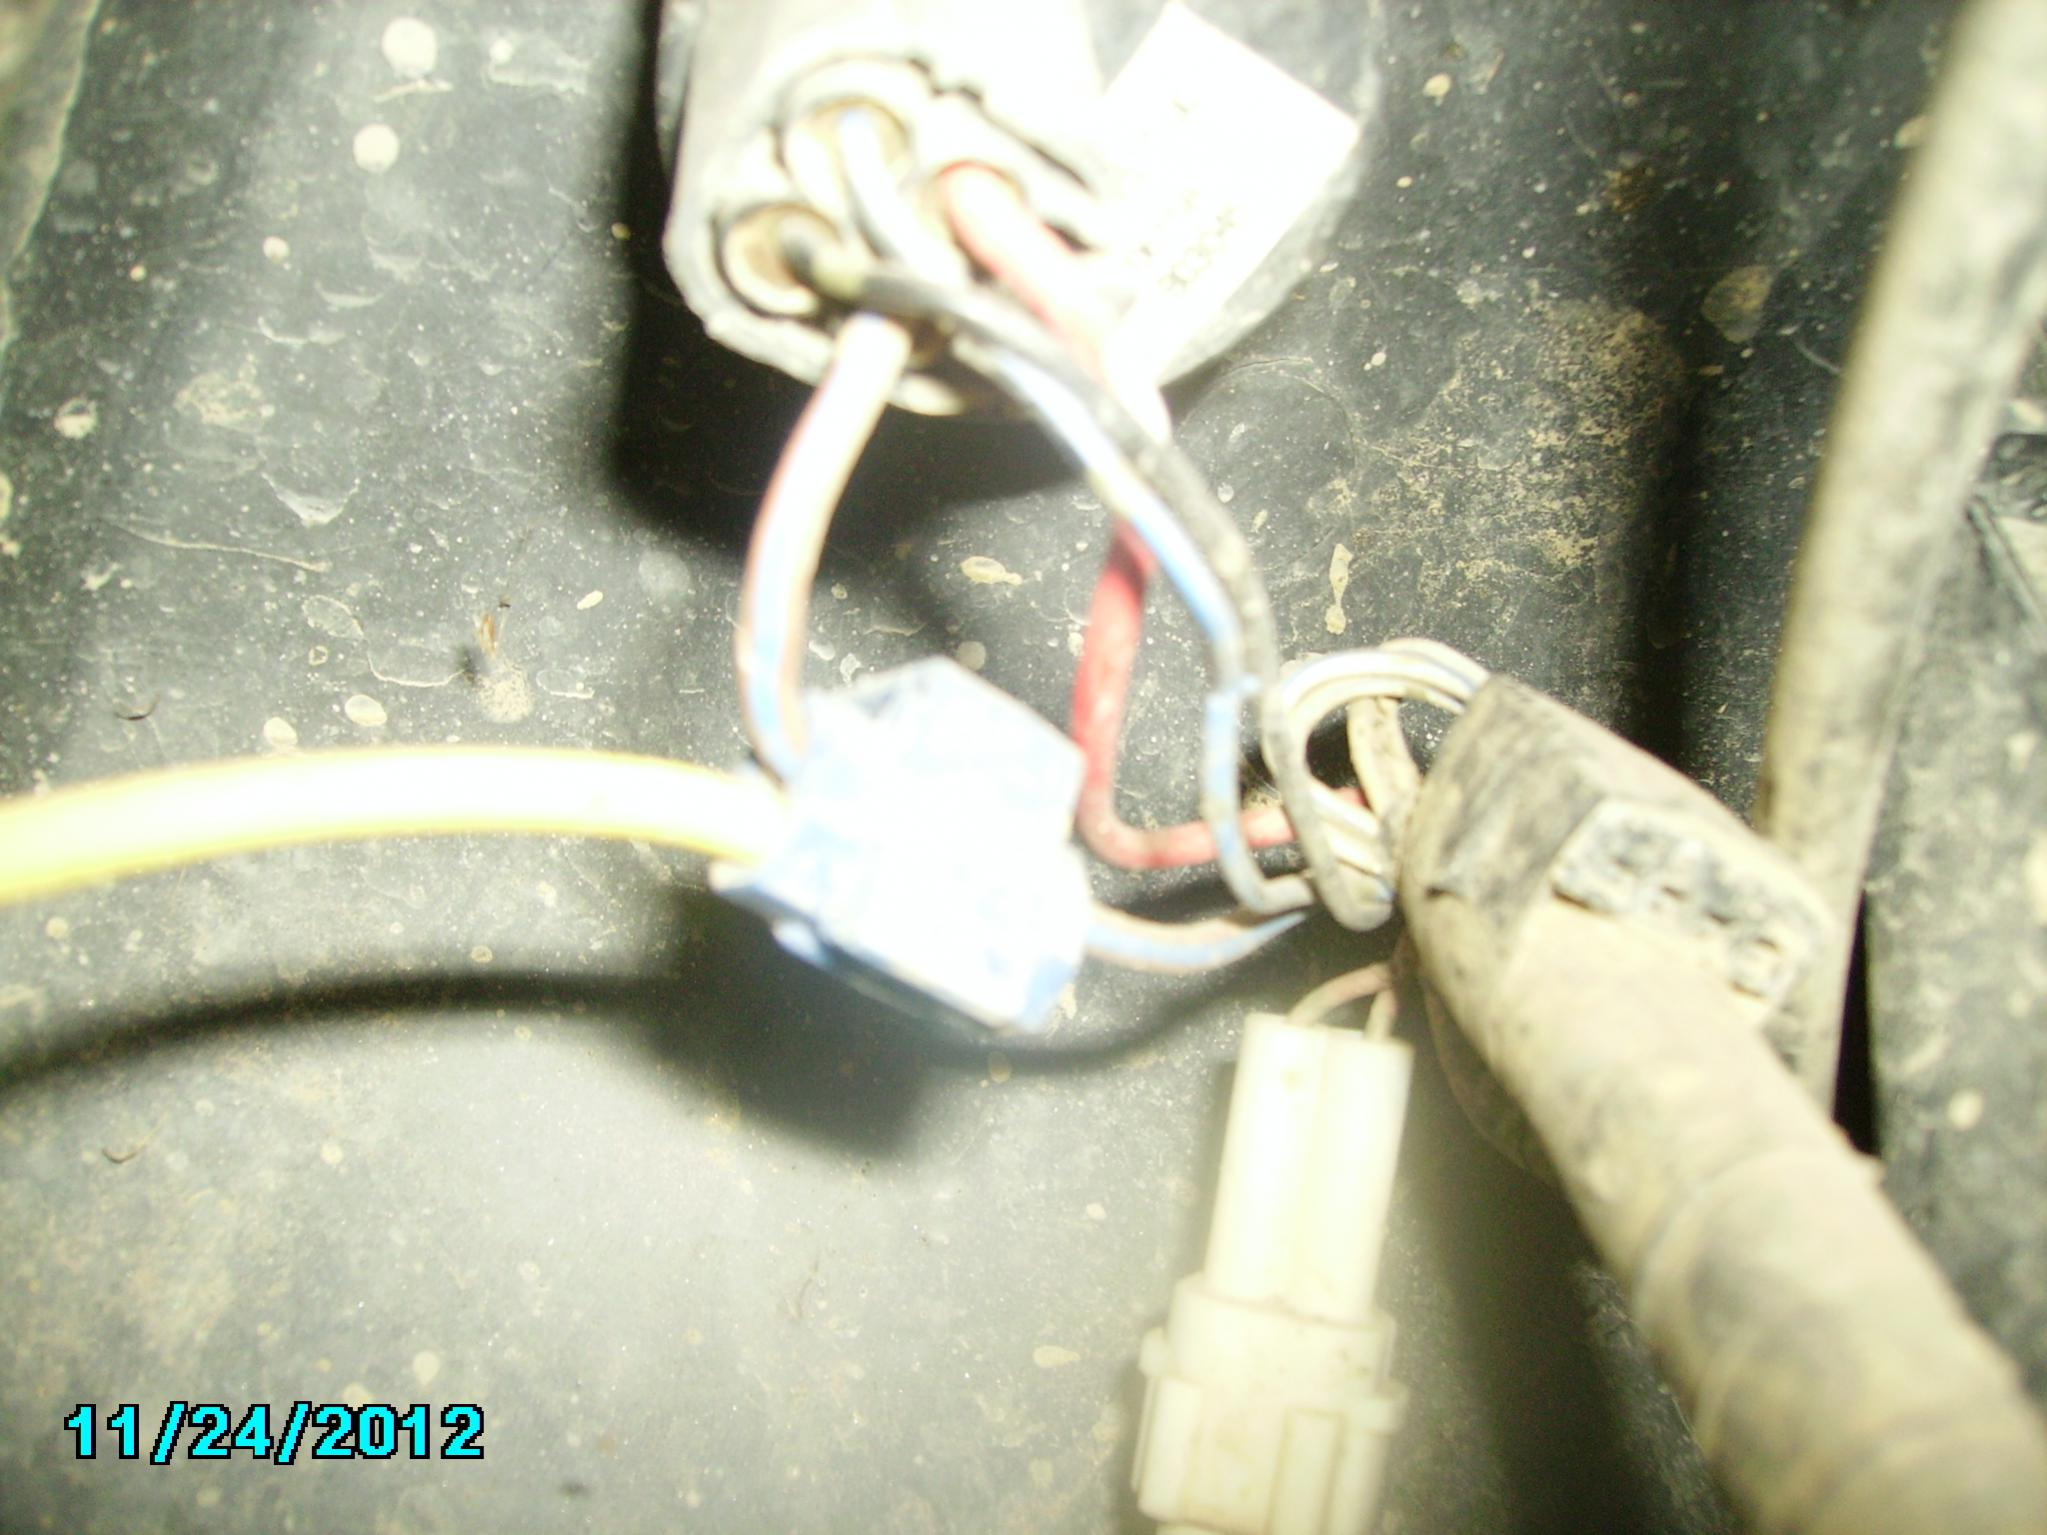 31411d1353766137 fuel injected 660 kinda rhino fuel pump 001 fuel injected 660 (kinda) yamaha rhino forum rhino forums net yamaha rhino ignition switch wiring diagram at alyssarenee.co